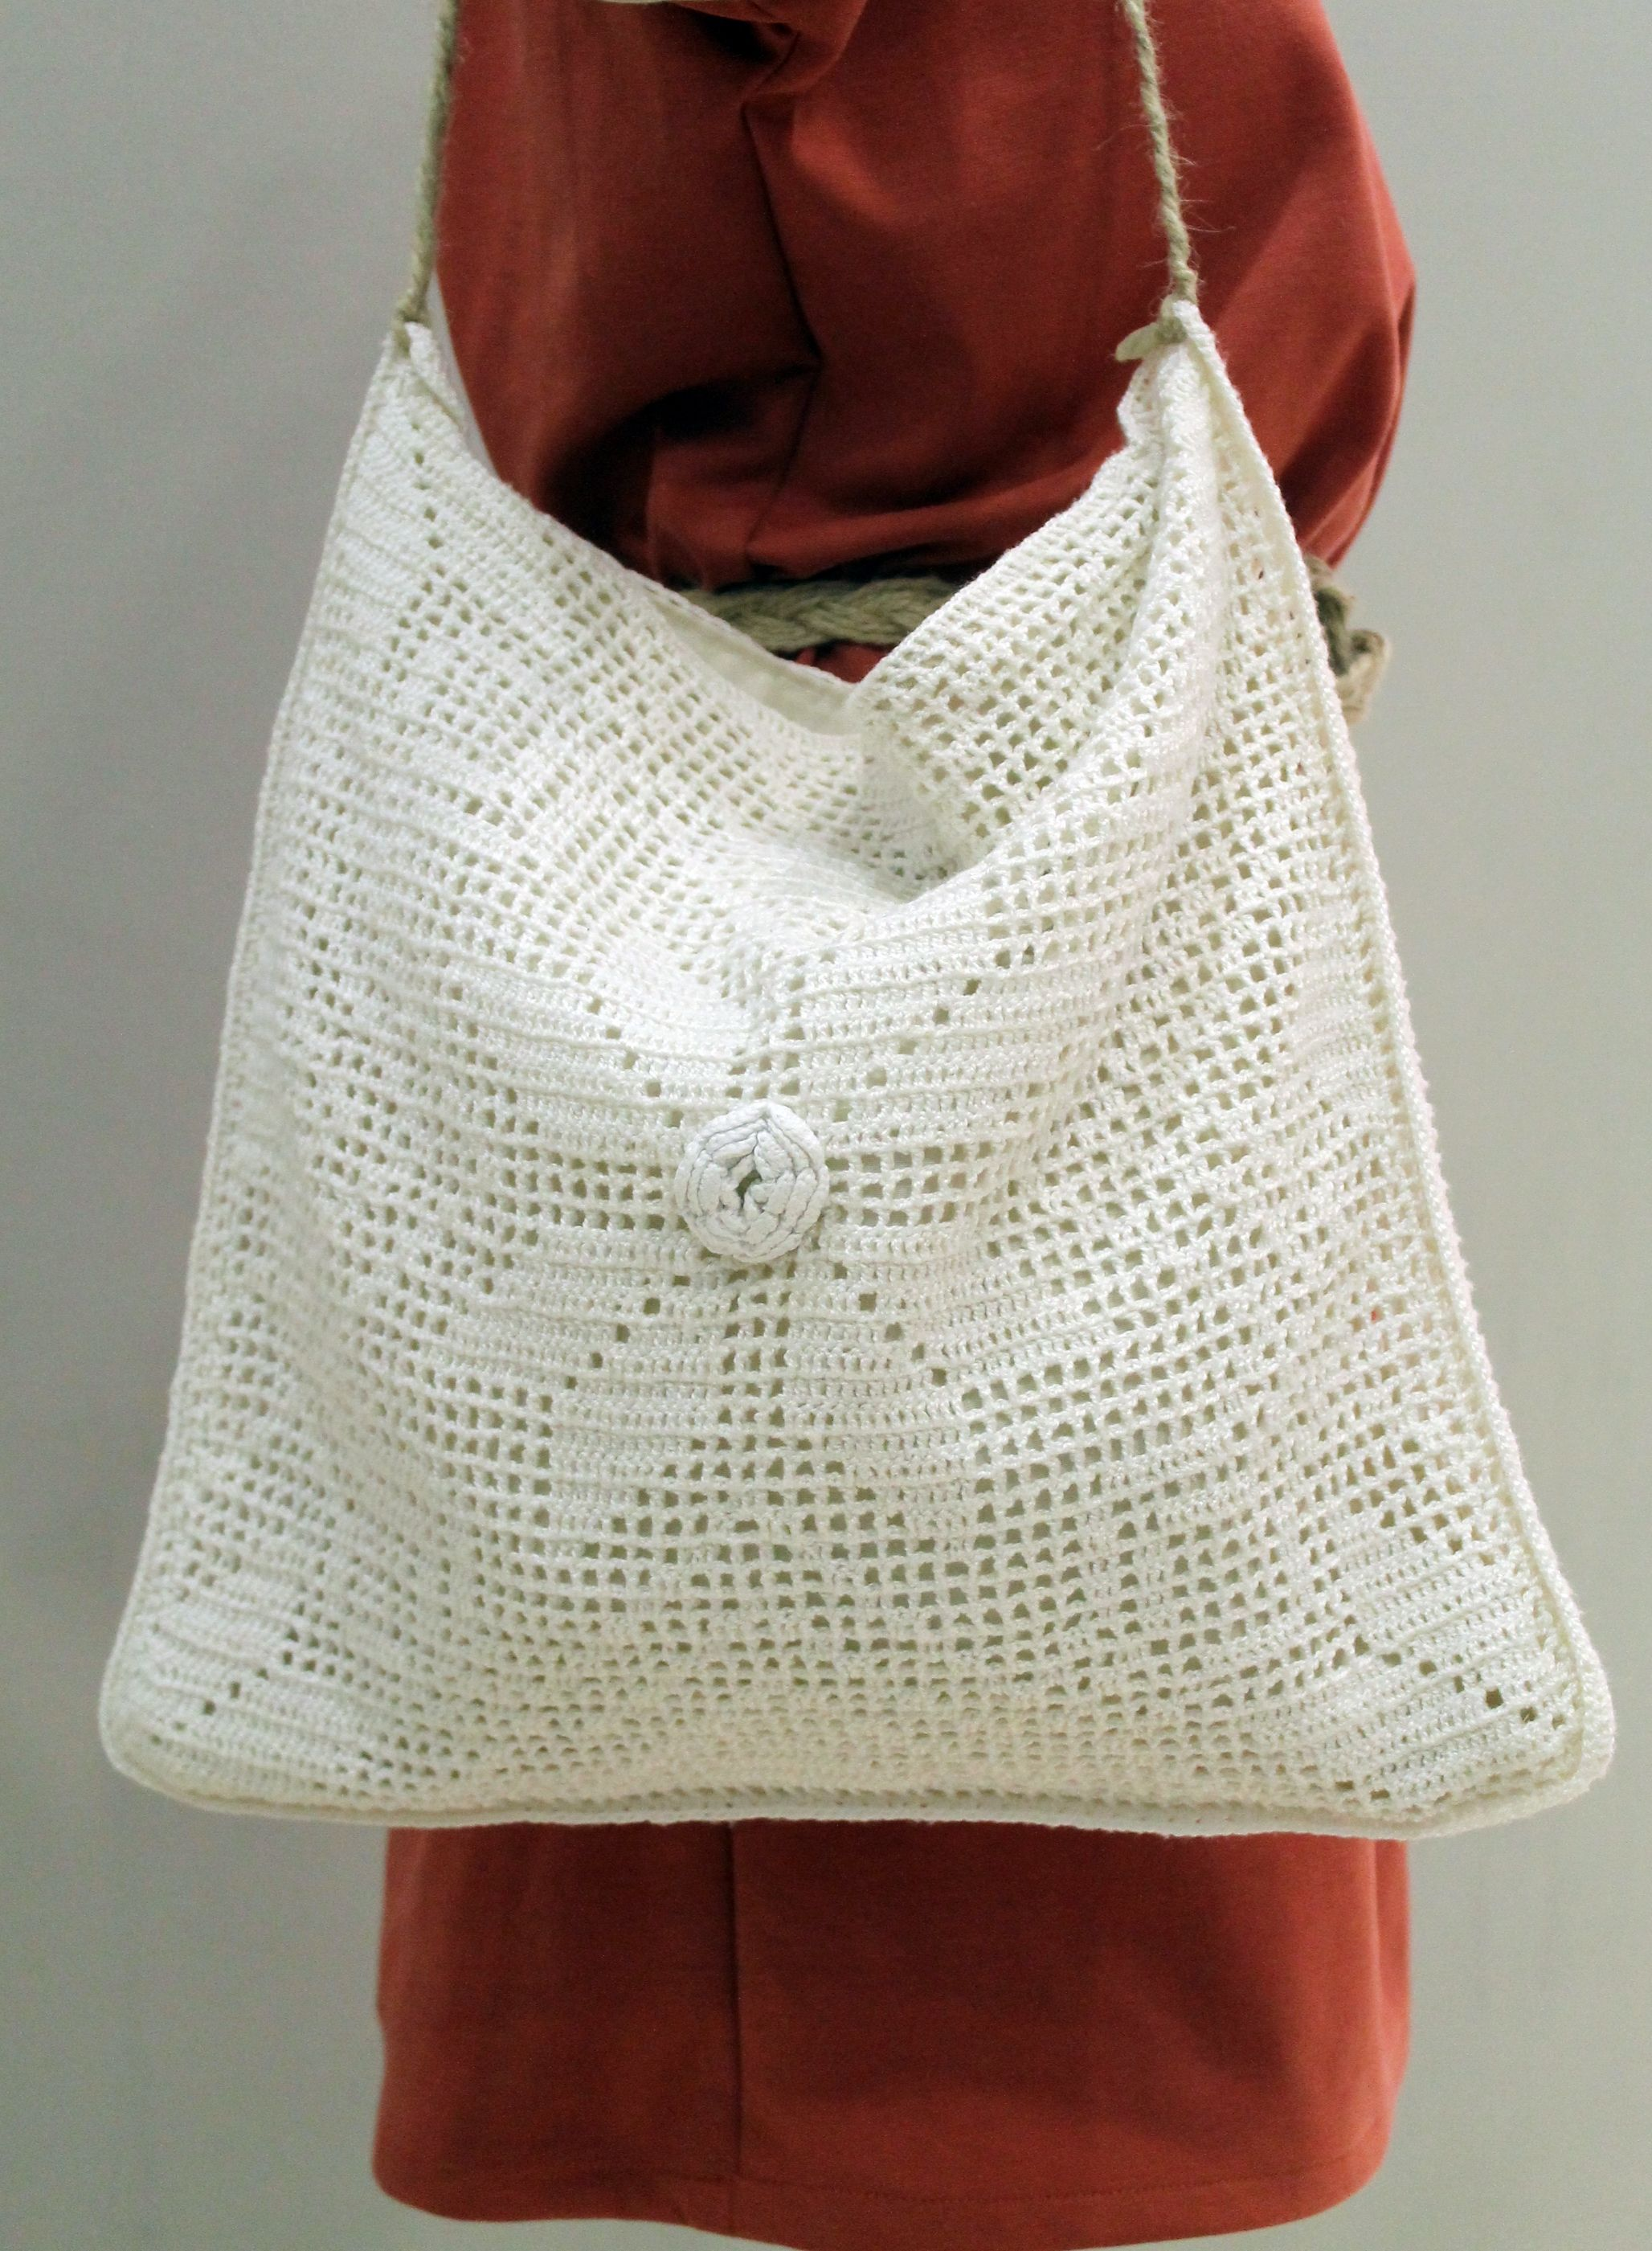 Crochet Bags Pinterest : Pin it Like Image